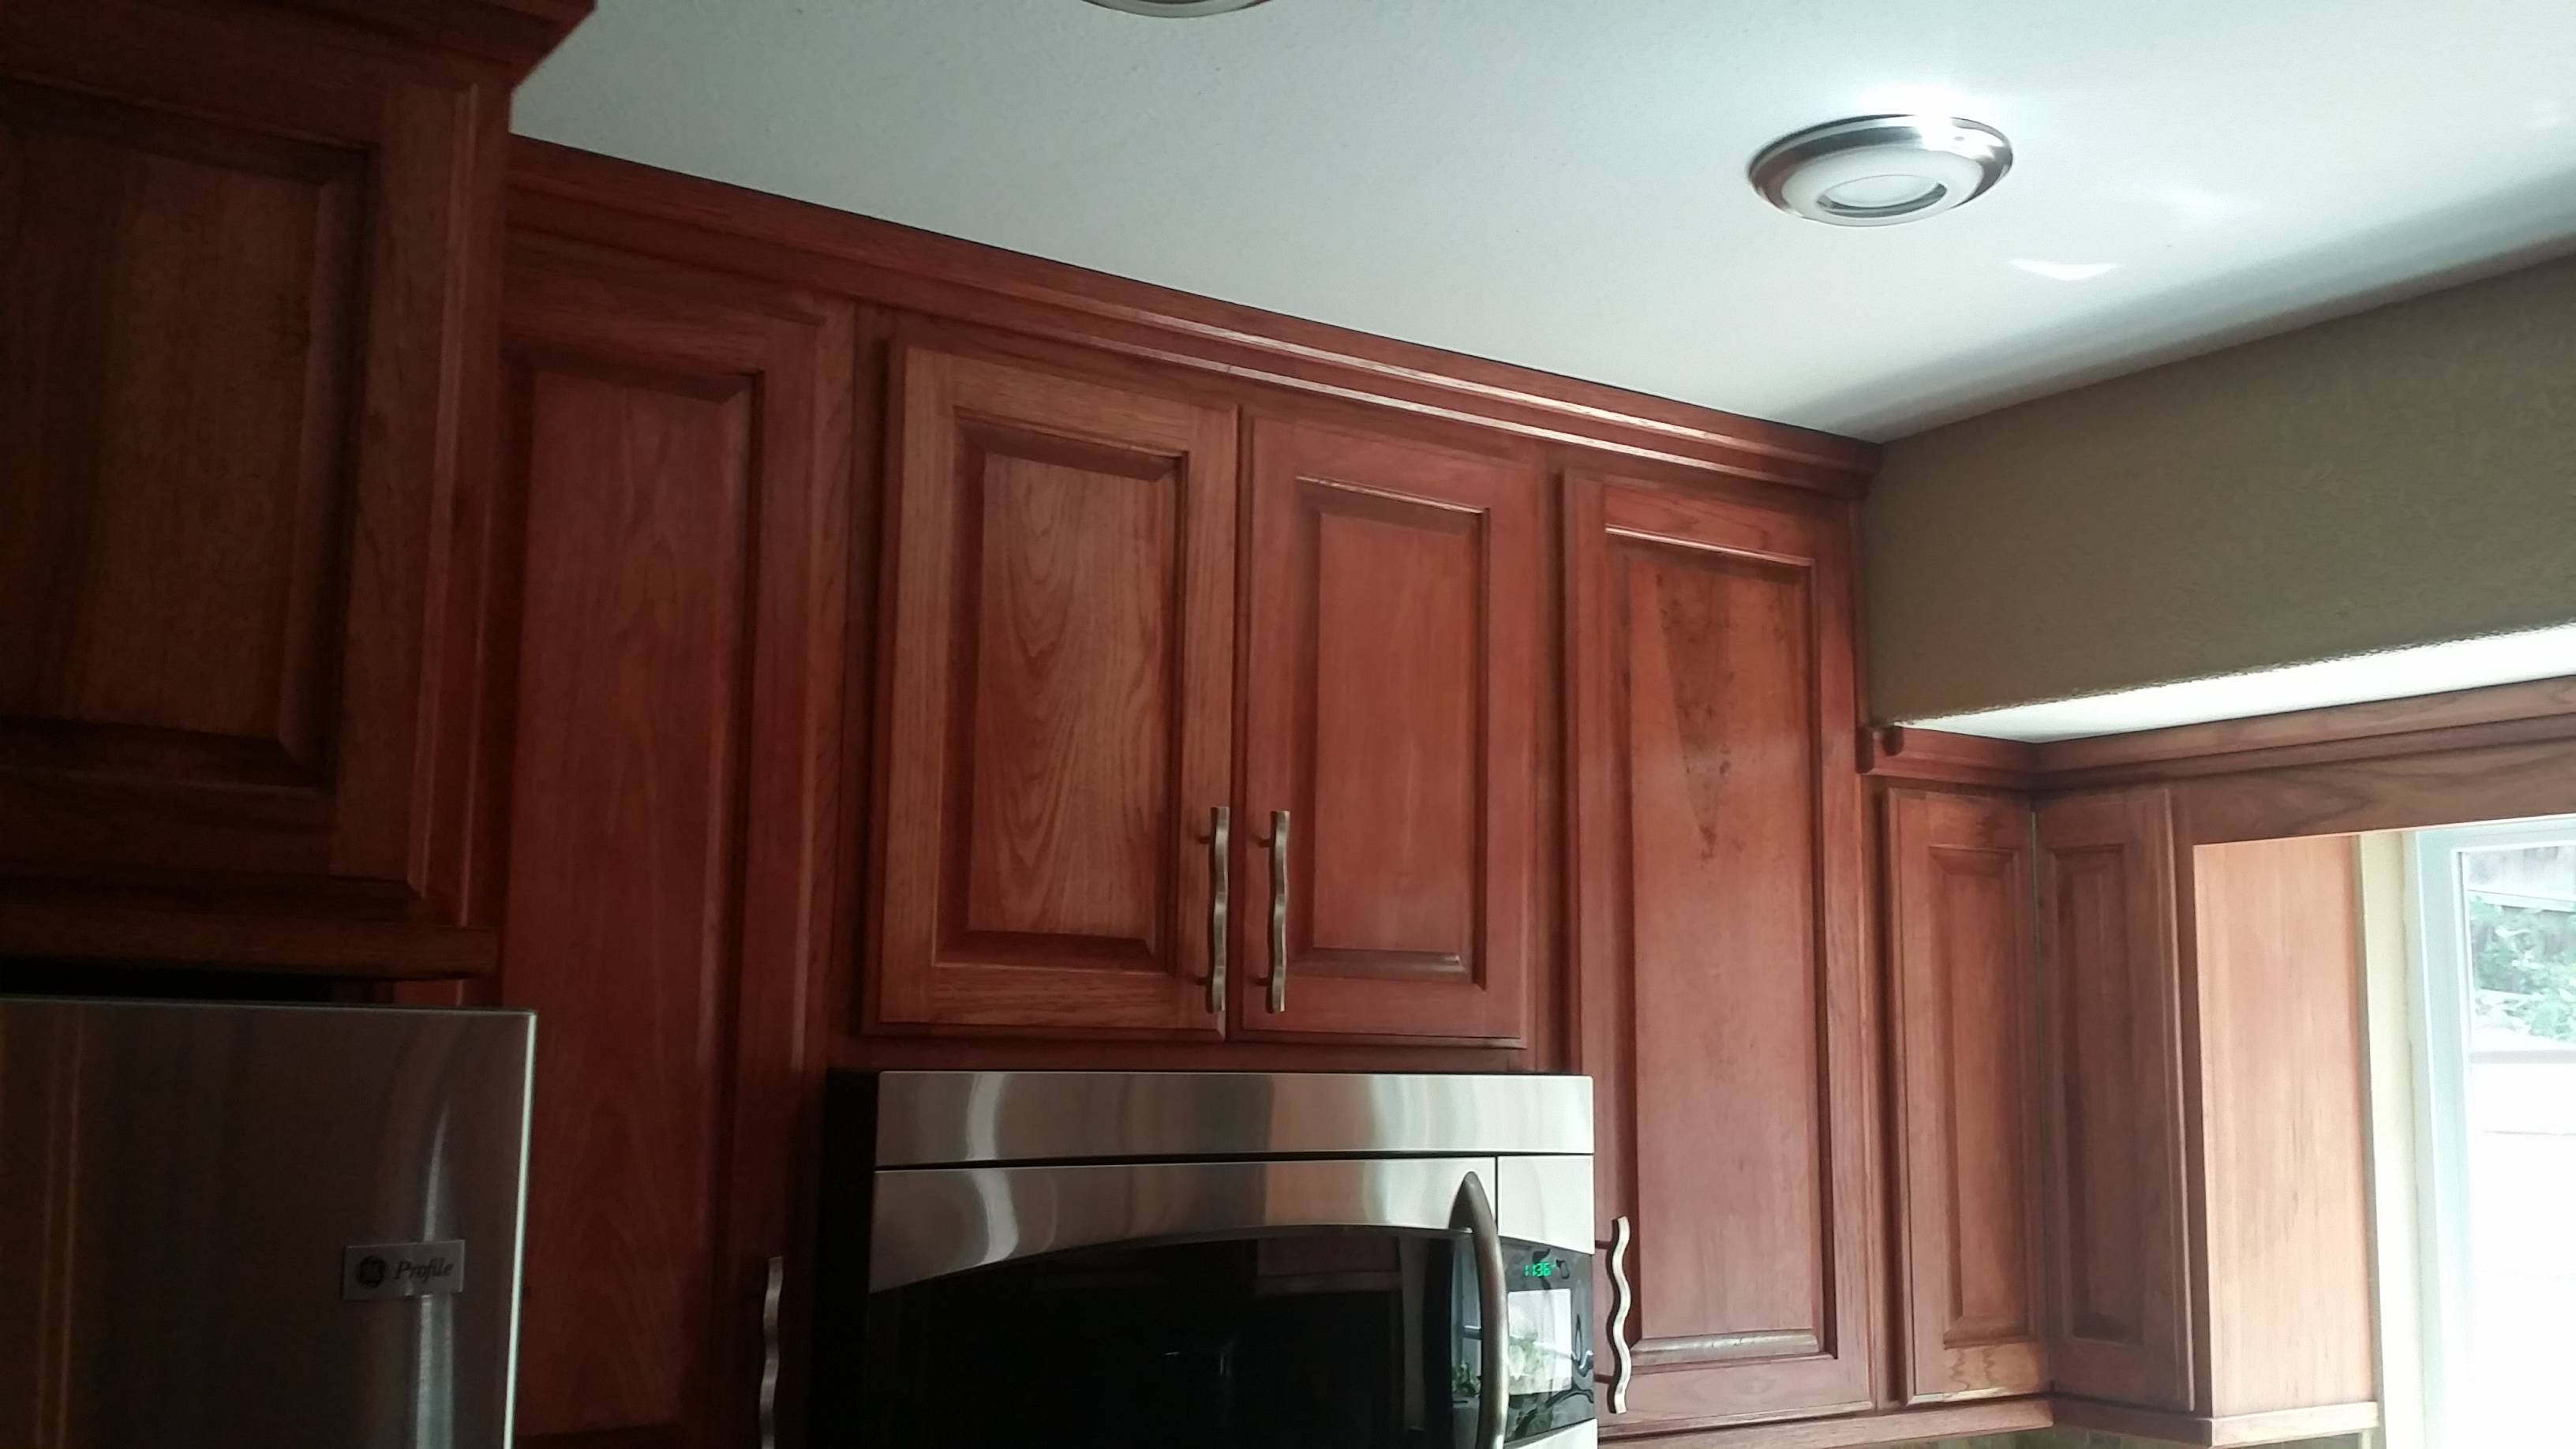 Wall Cabinets feature Sedona Red Hickory  Raised Panels, soft close door hinges and soft  close full slide out drawers.